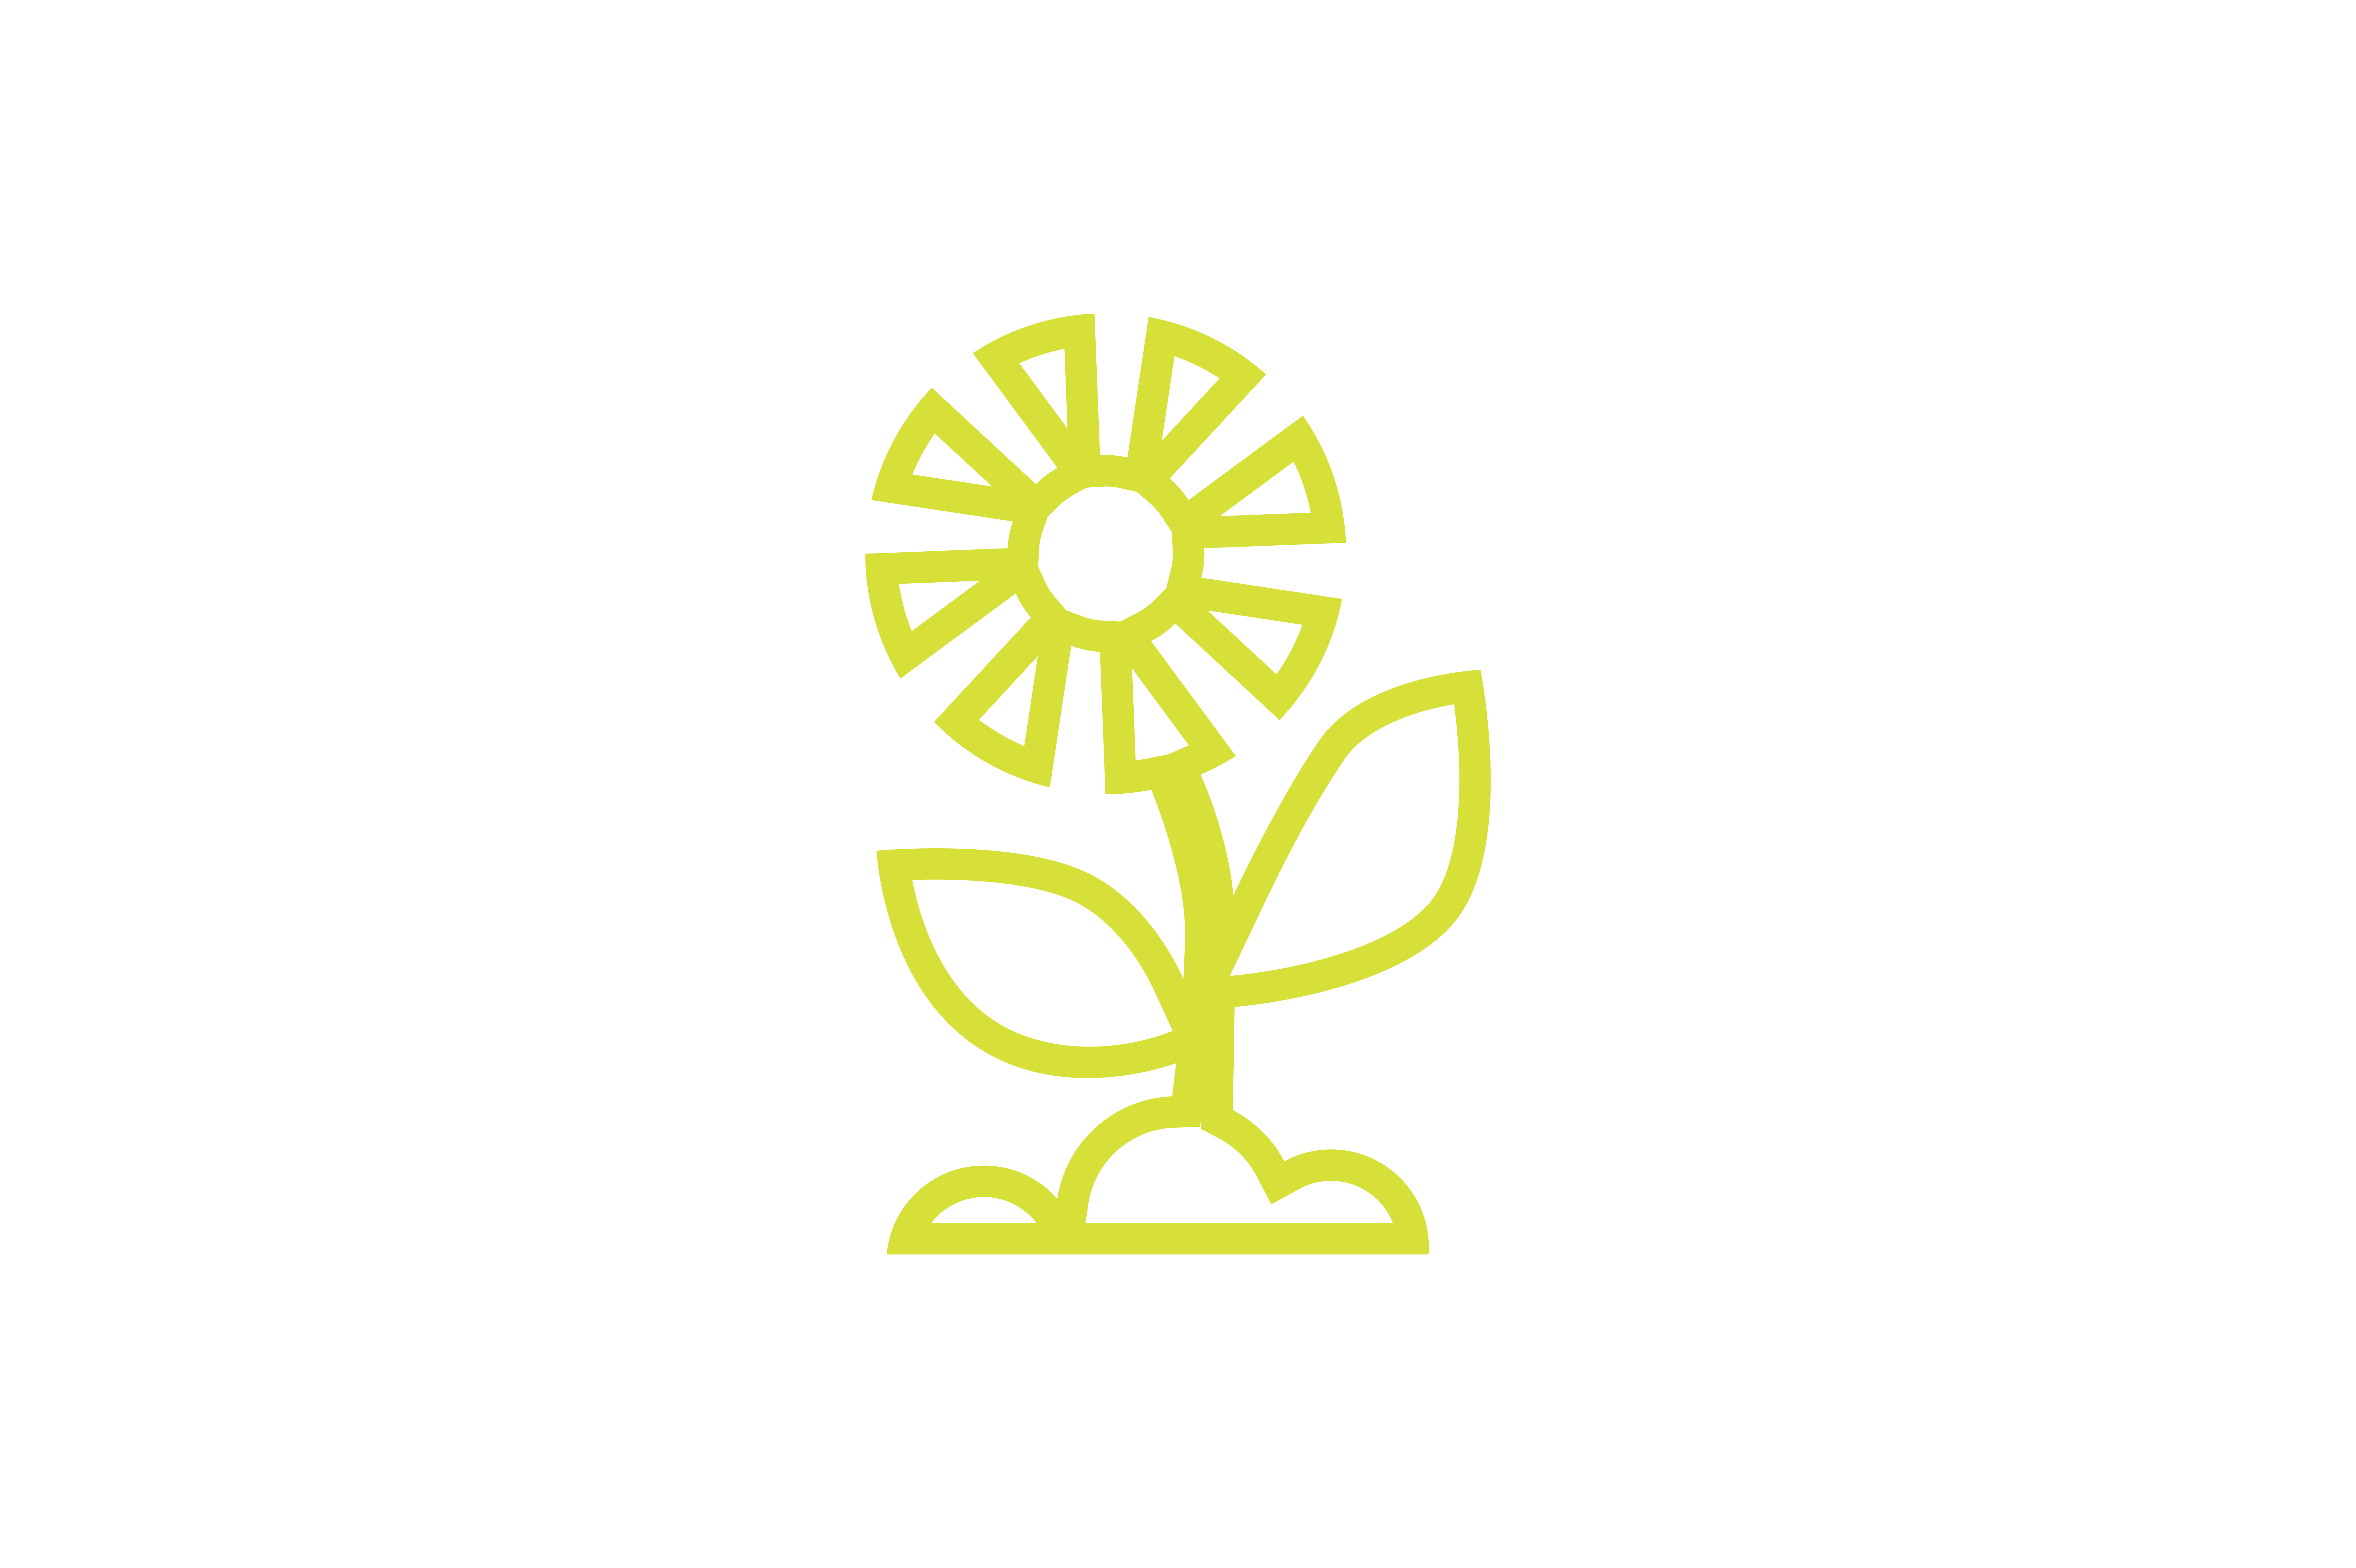 Download Free Farm Icon Graphic By Zafreeloicon Creative Fabrica for Cricut Explore, Silhouette and other cutting machines.